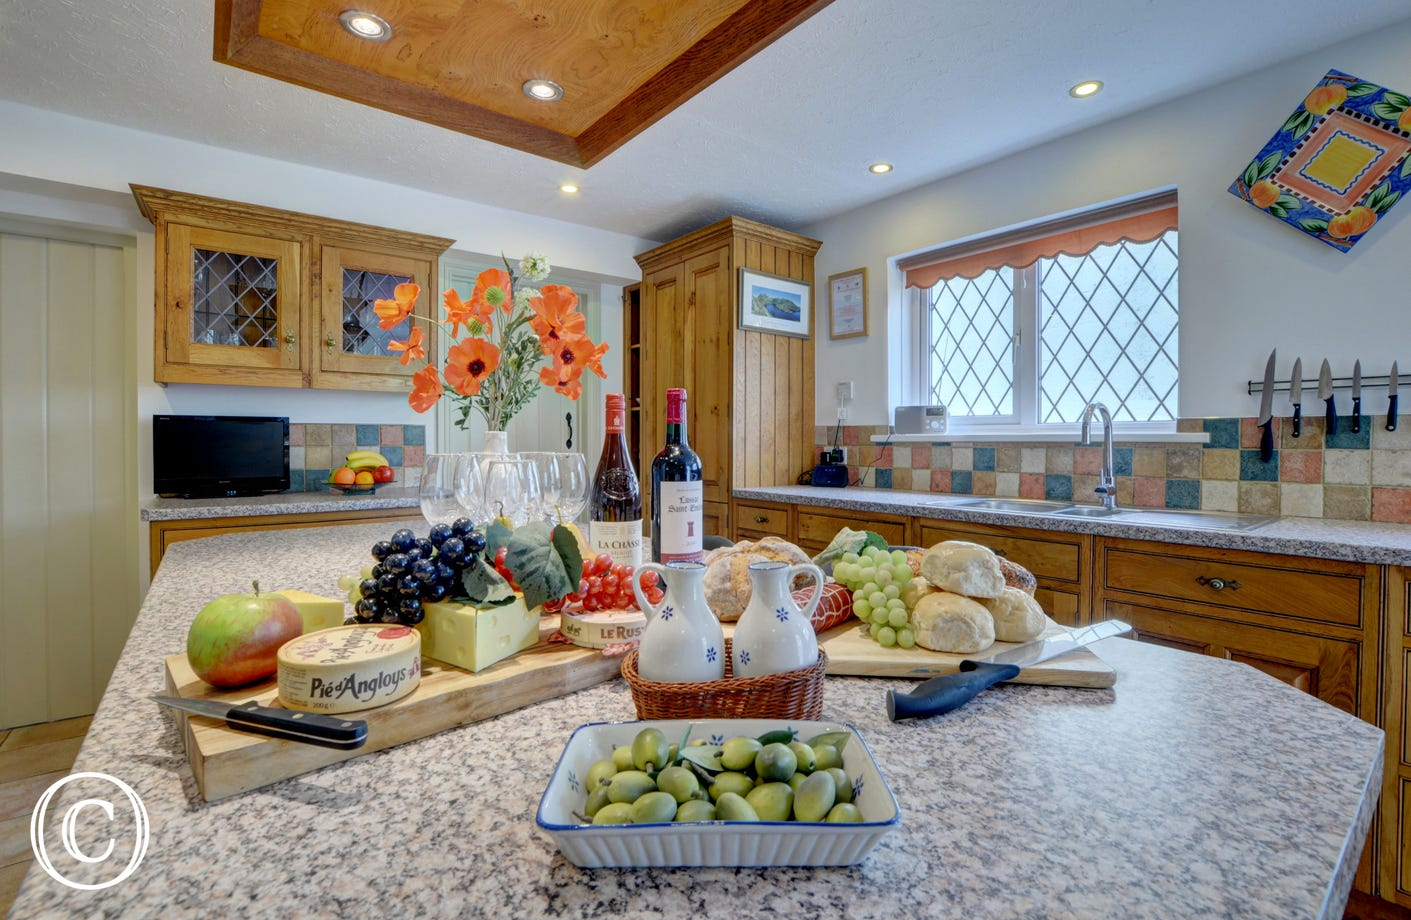 The large kitchen is extremely well equipped and has plenty of space for preparing family meals